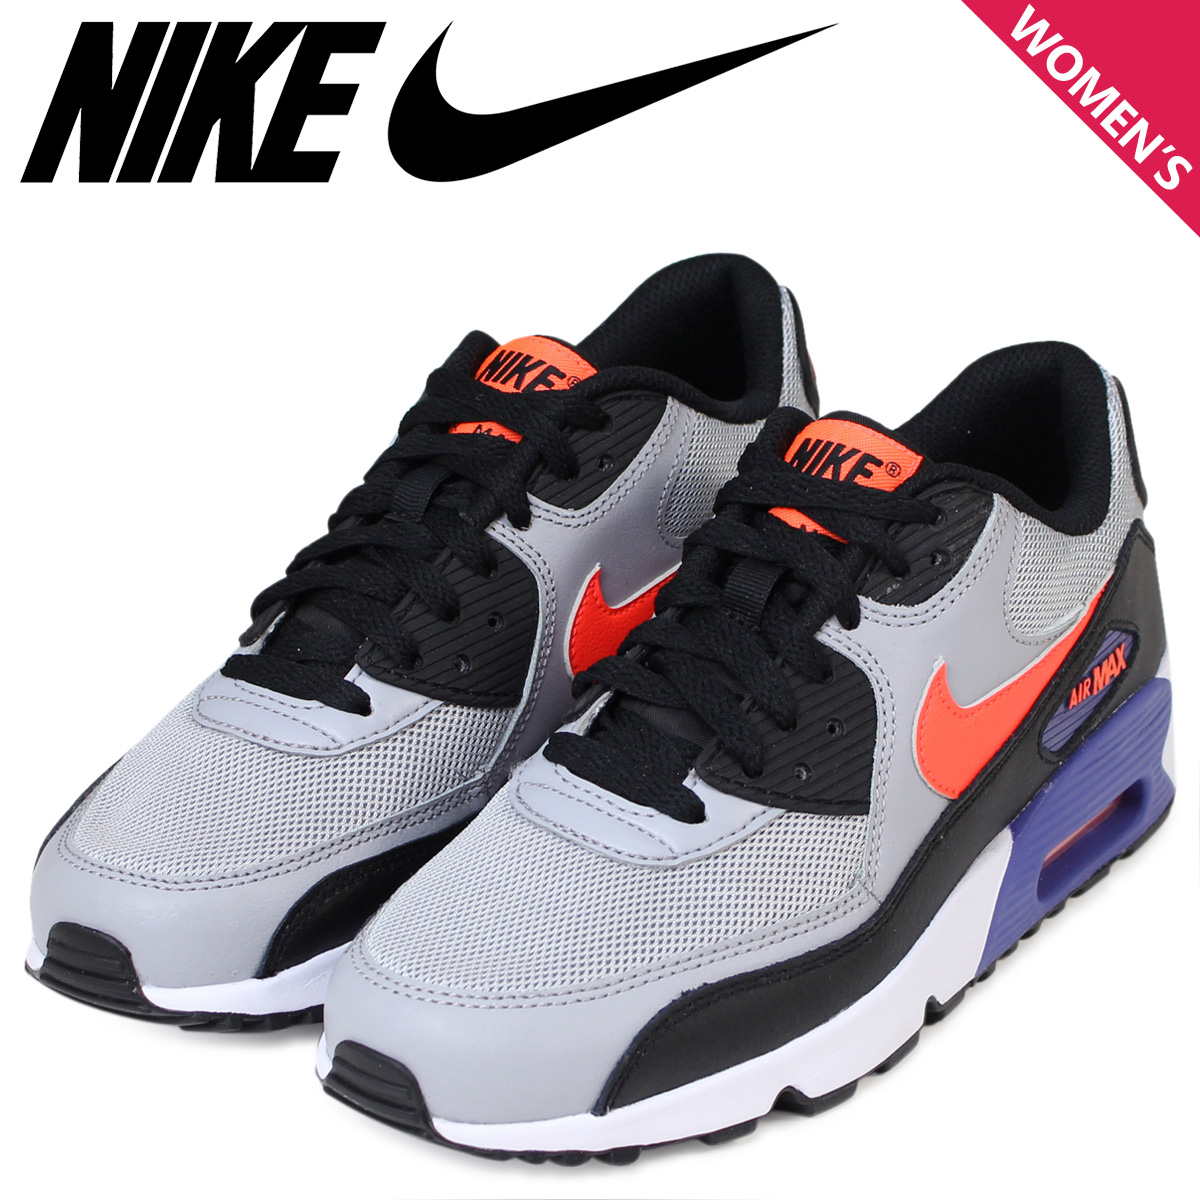 detailed look e2932 ecb1c NIKE Kie Ney AMAX Lady's sneakers AIR MAX 90 MESH Air Max 833,418-002 shoes  gray